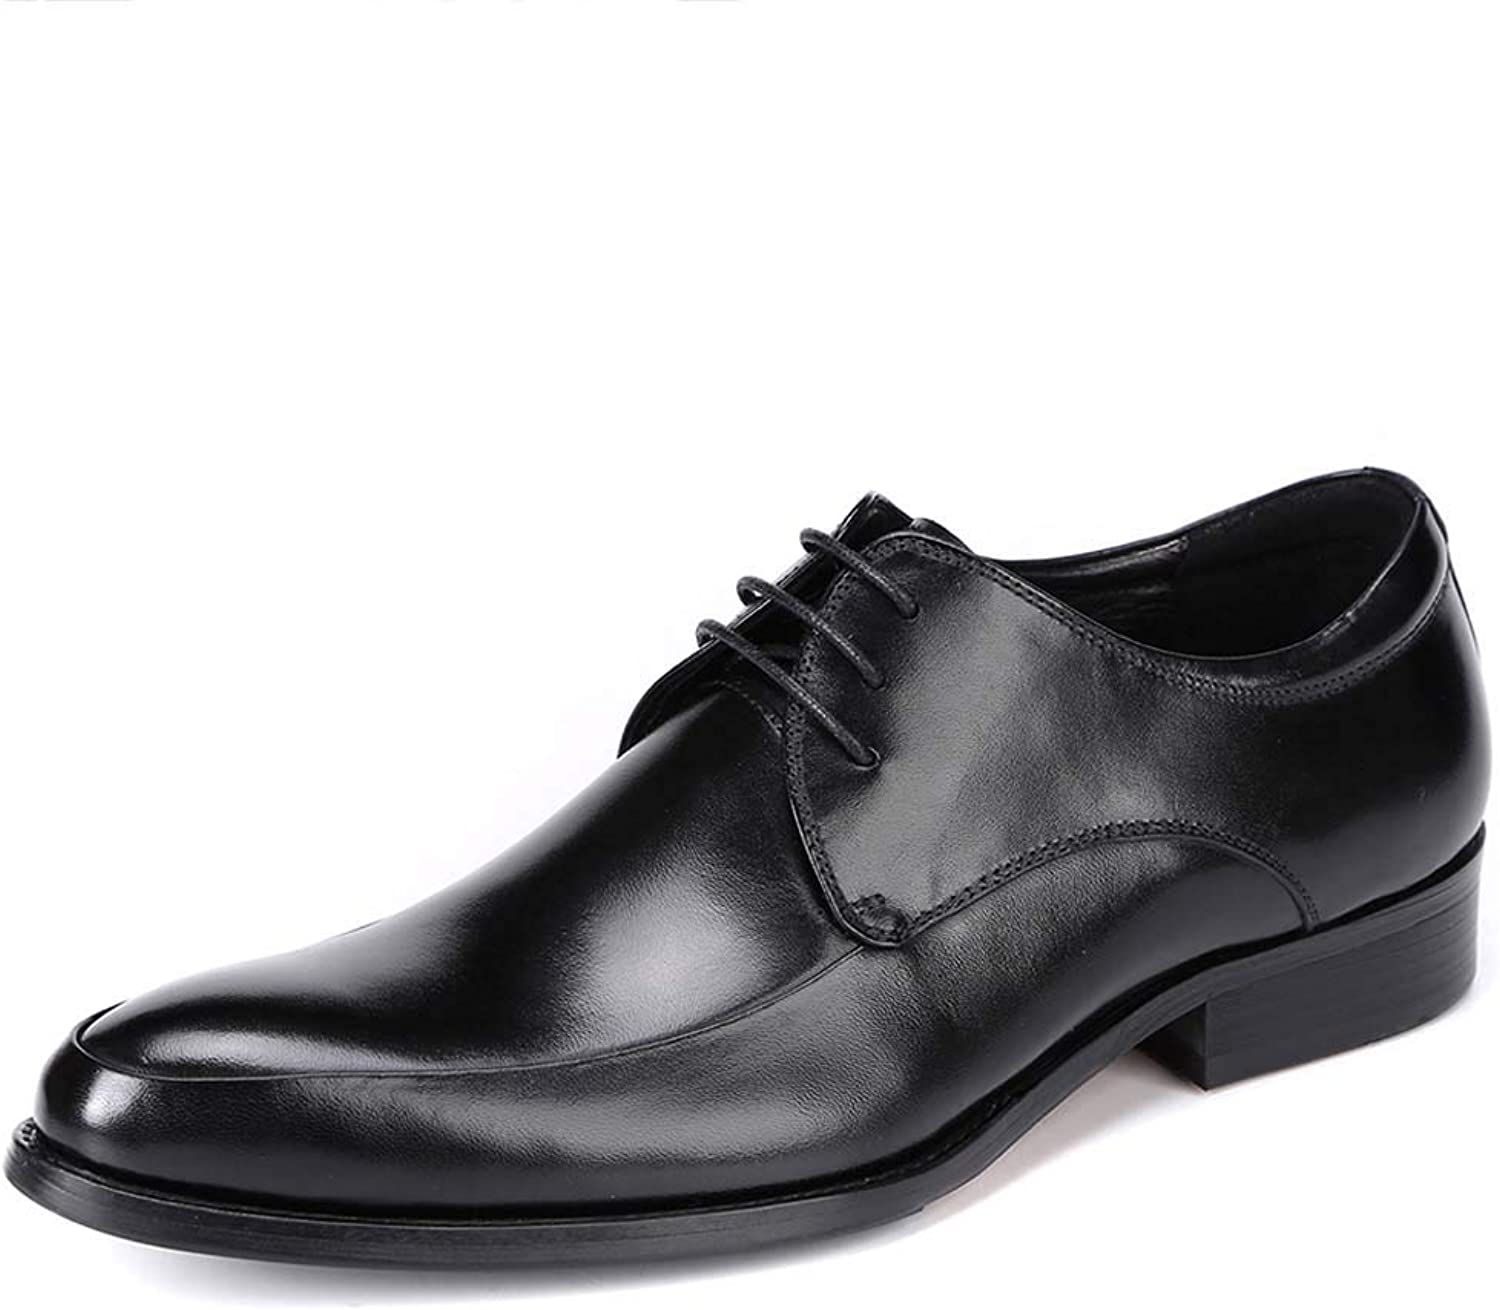 Men's Business shoes with Low-Cut Pointed Wedding shoes Dress shoes